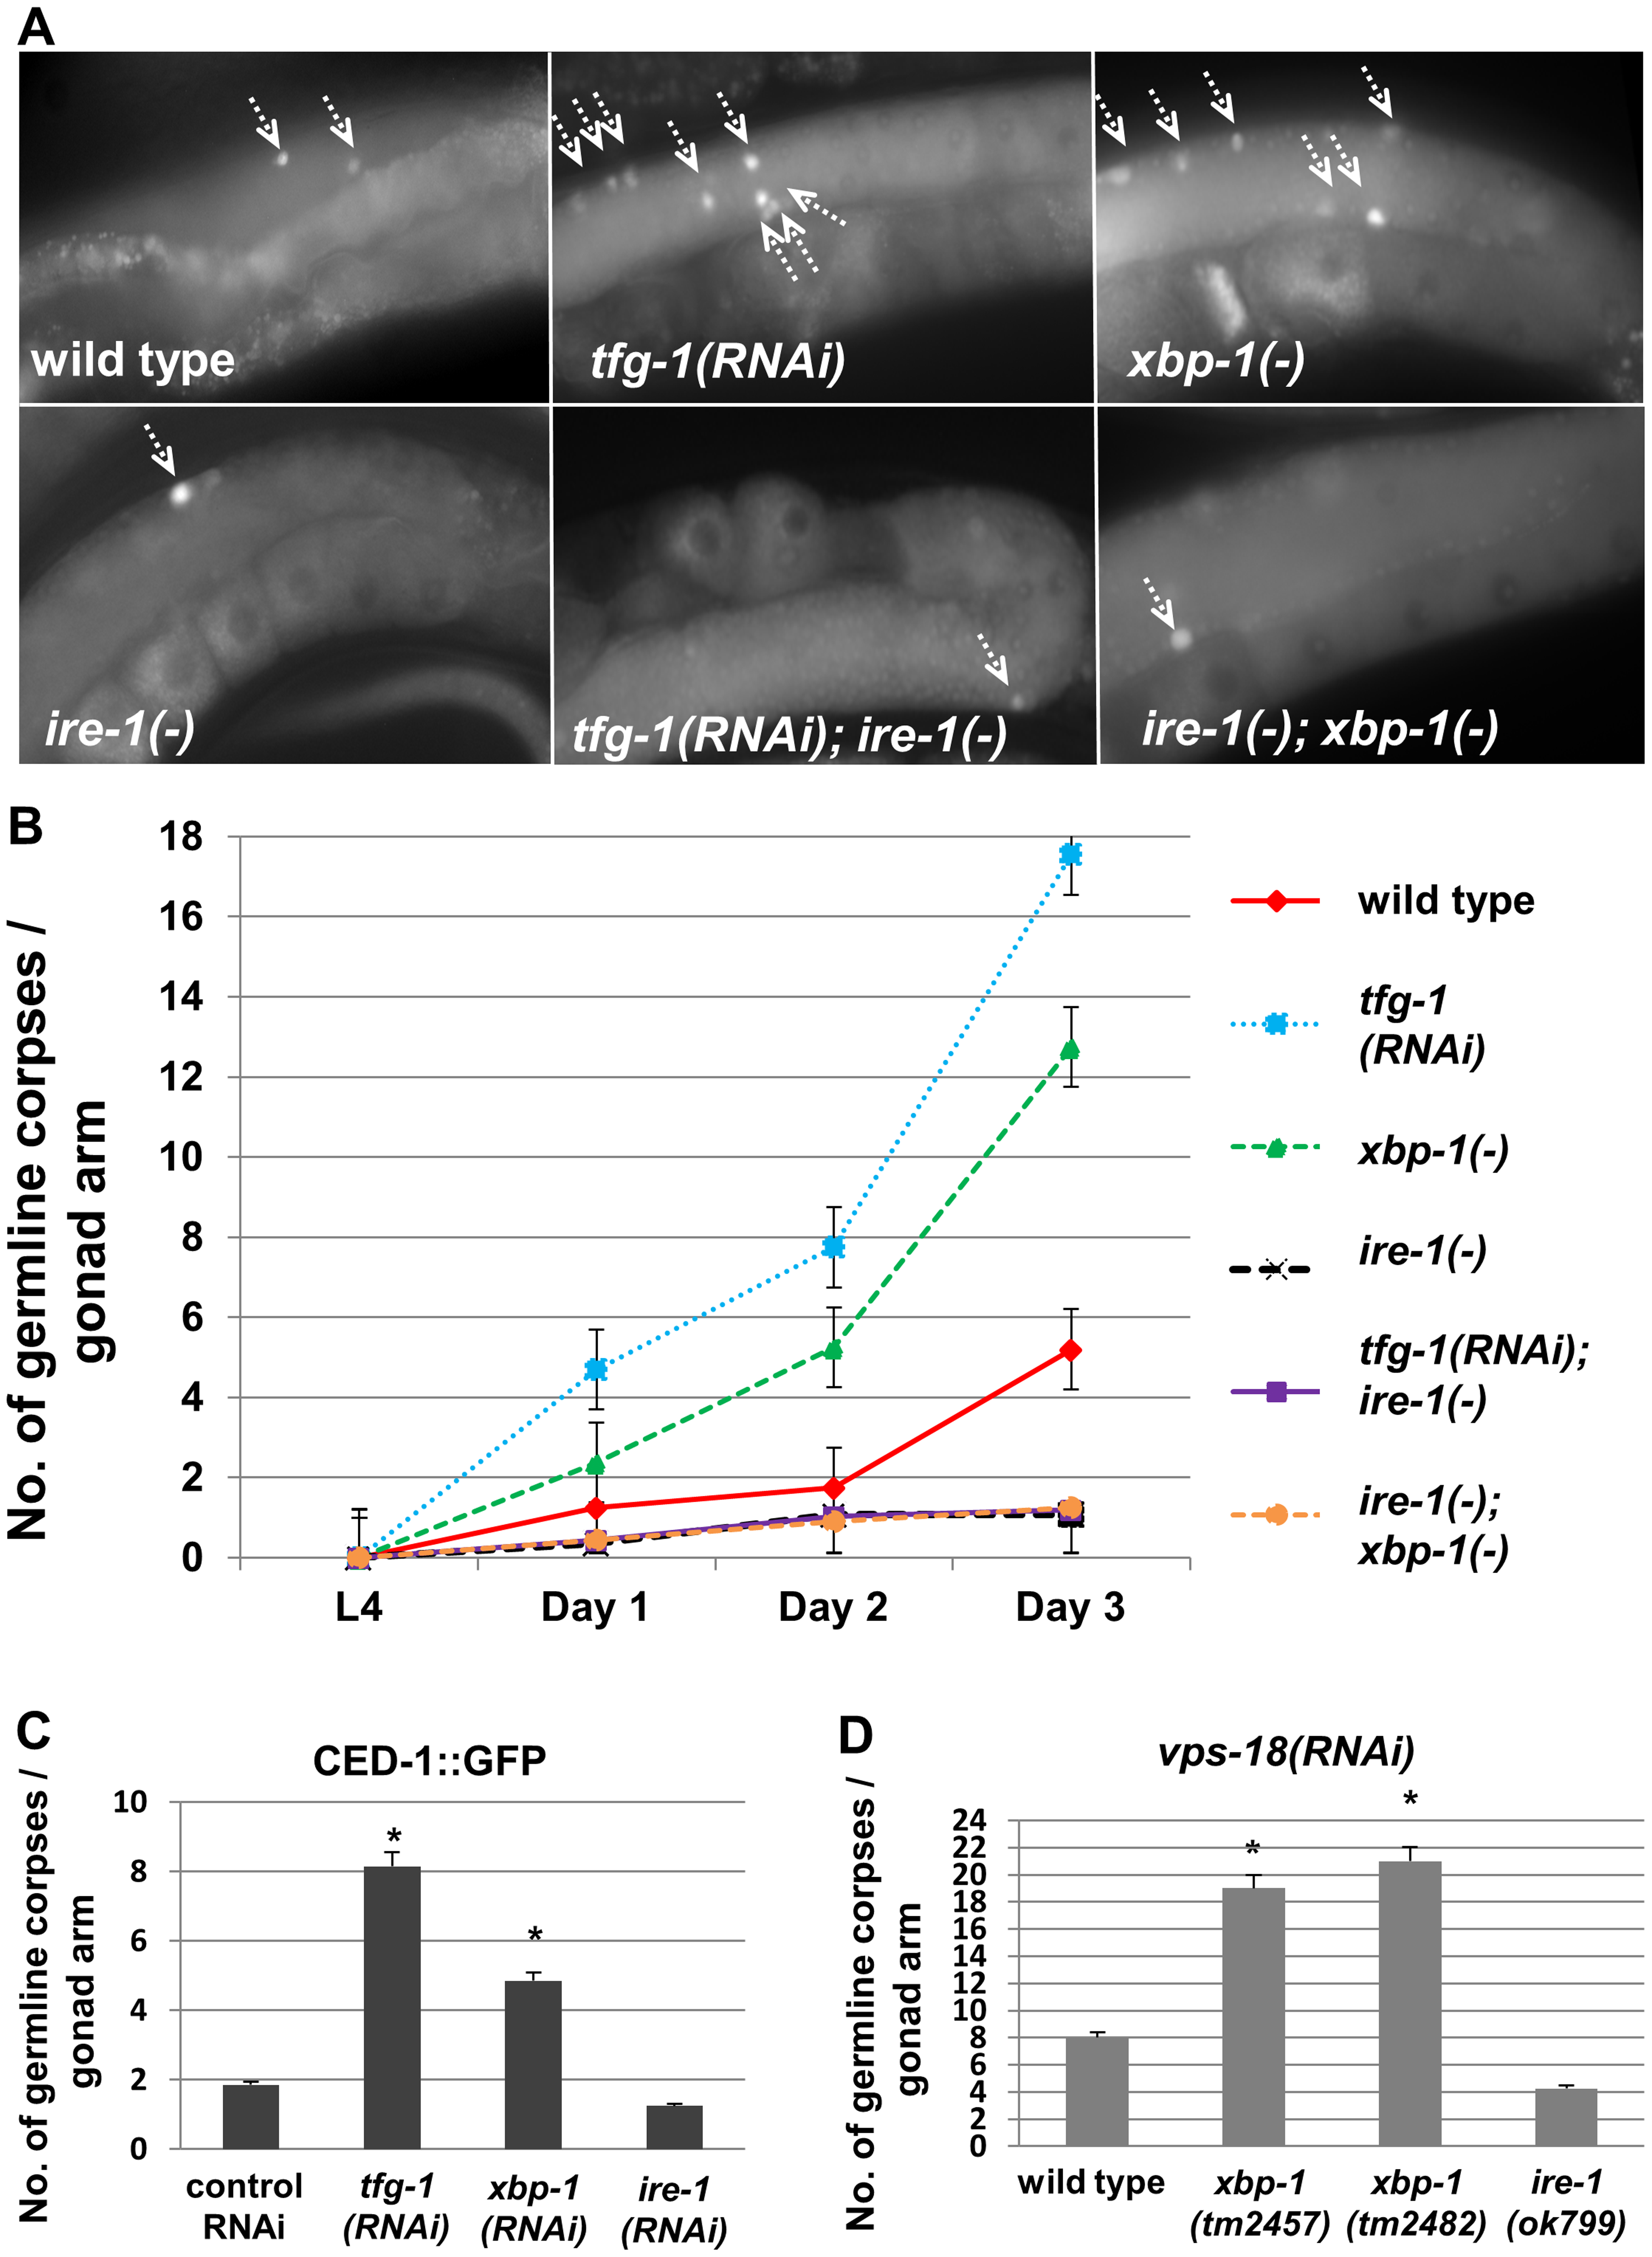 Genetically-induced ER stress increases germ cell apoptosis in an <i>ire-1</i>-dependent manner.